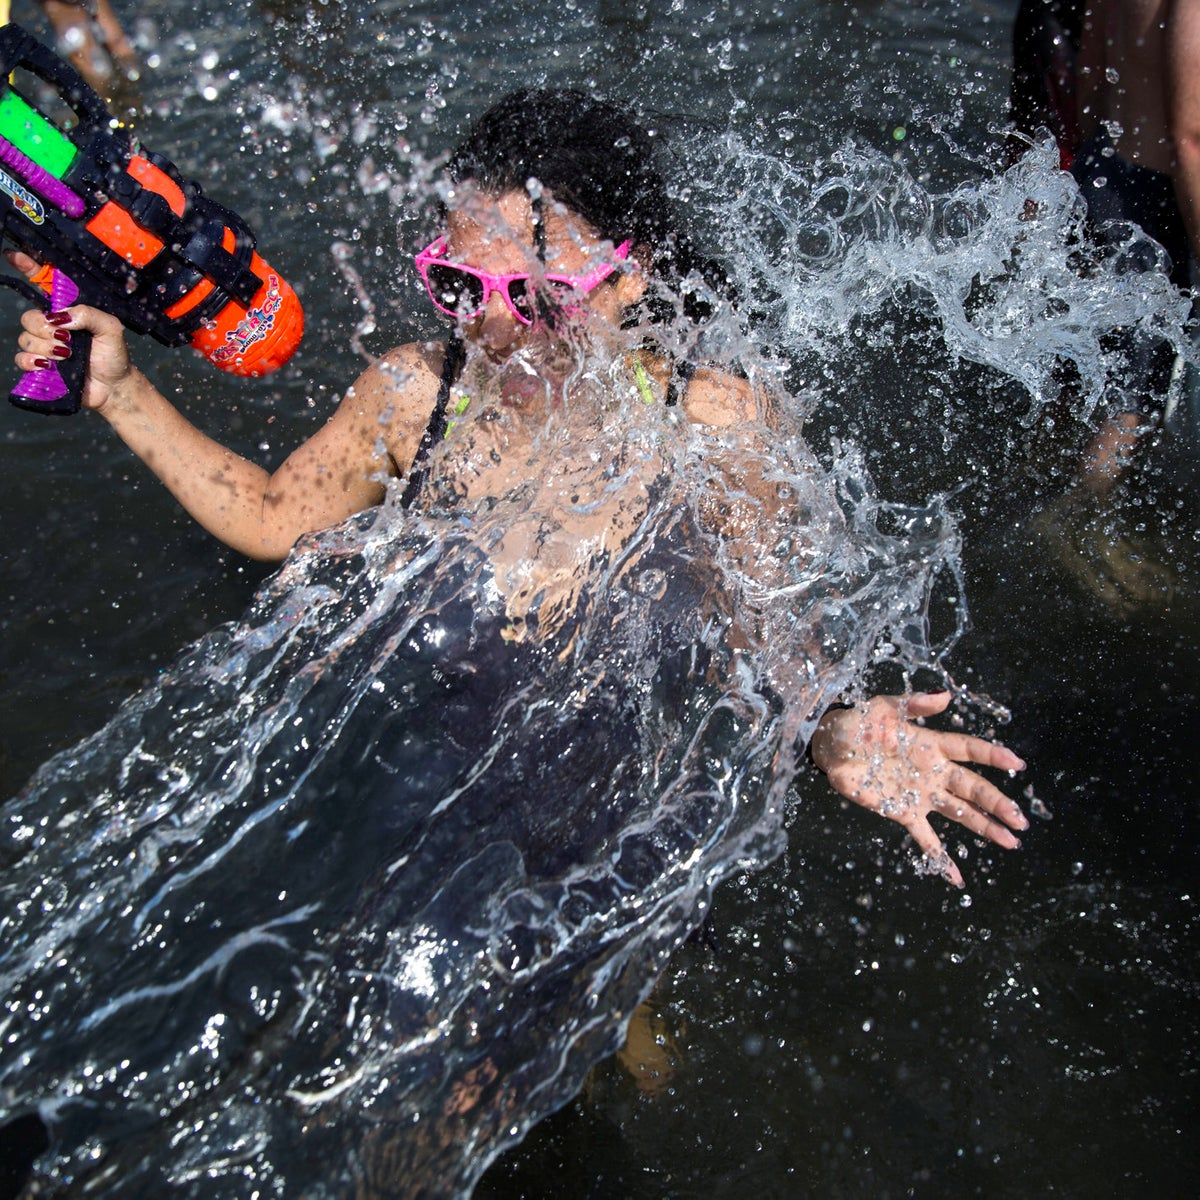 People spray water during a water fight cub event attended by several hundred people, and held annually to mark the start of the summer vacation, at Habima Square, in central Tel Aviv, Israel, Friday, July 6, 2018.